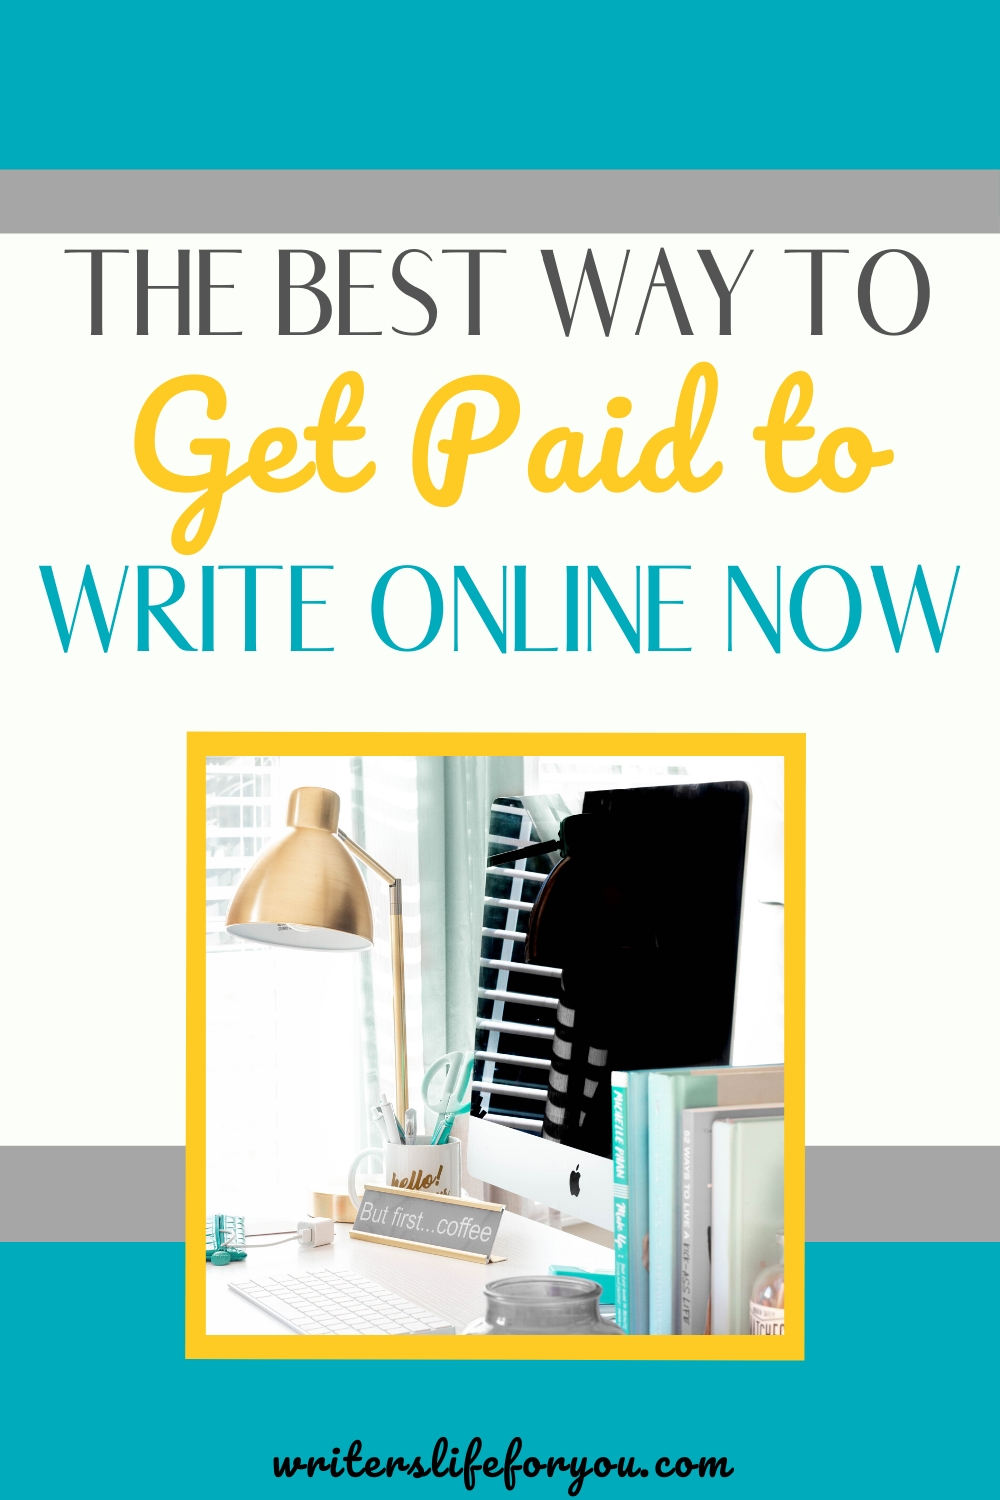 The Best Way to Get Paid to Write Online Now